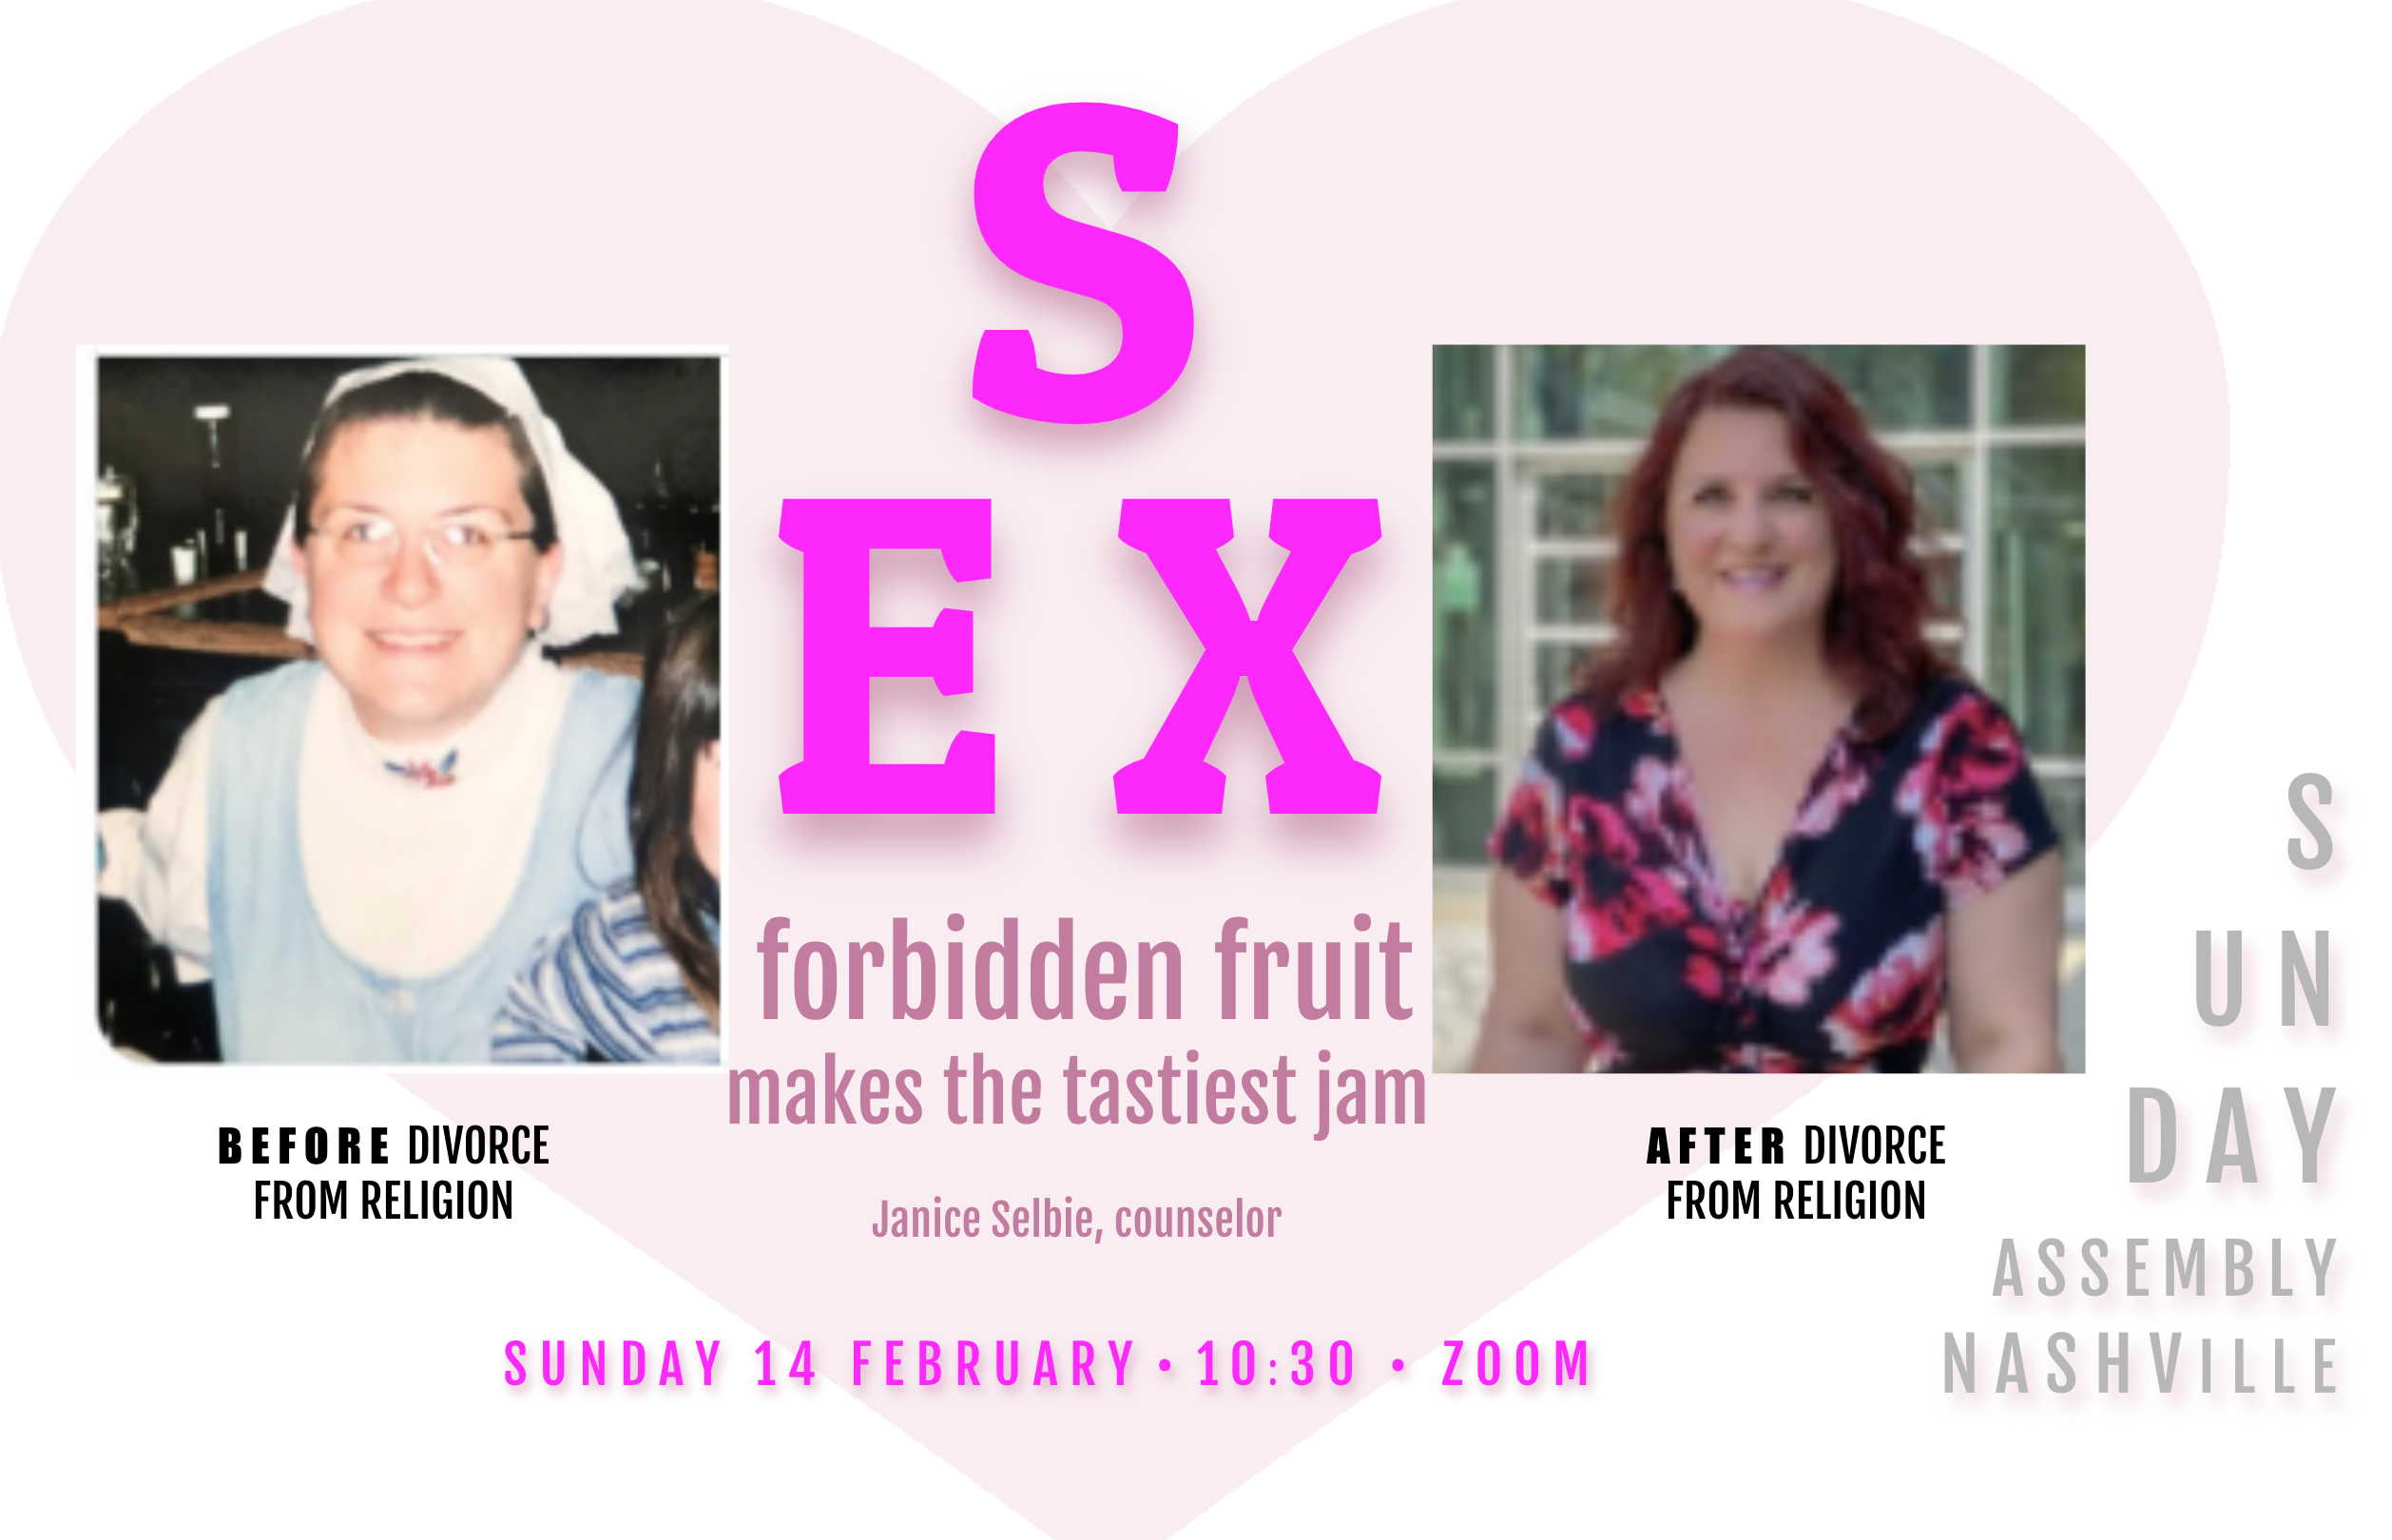 Sunday Assembly Nashville ~ SEX ~ forbidden fruit makes the tastiest jam. with Janice Selbie, counselor sunday 14 february